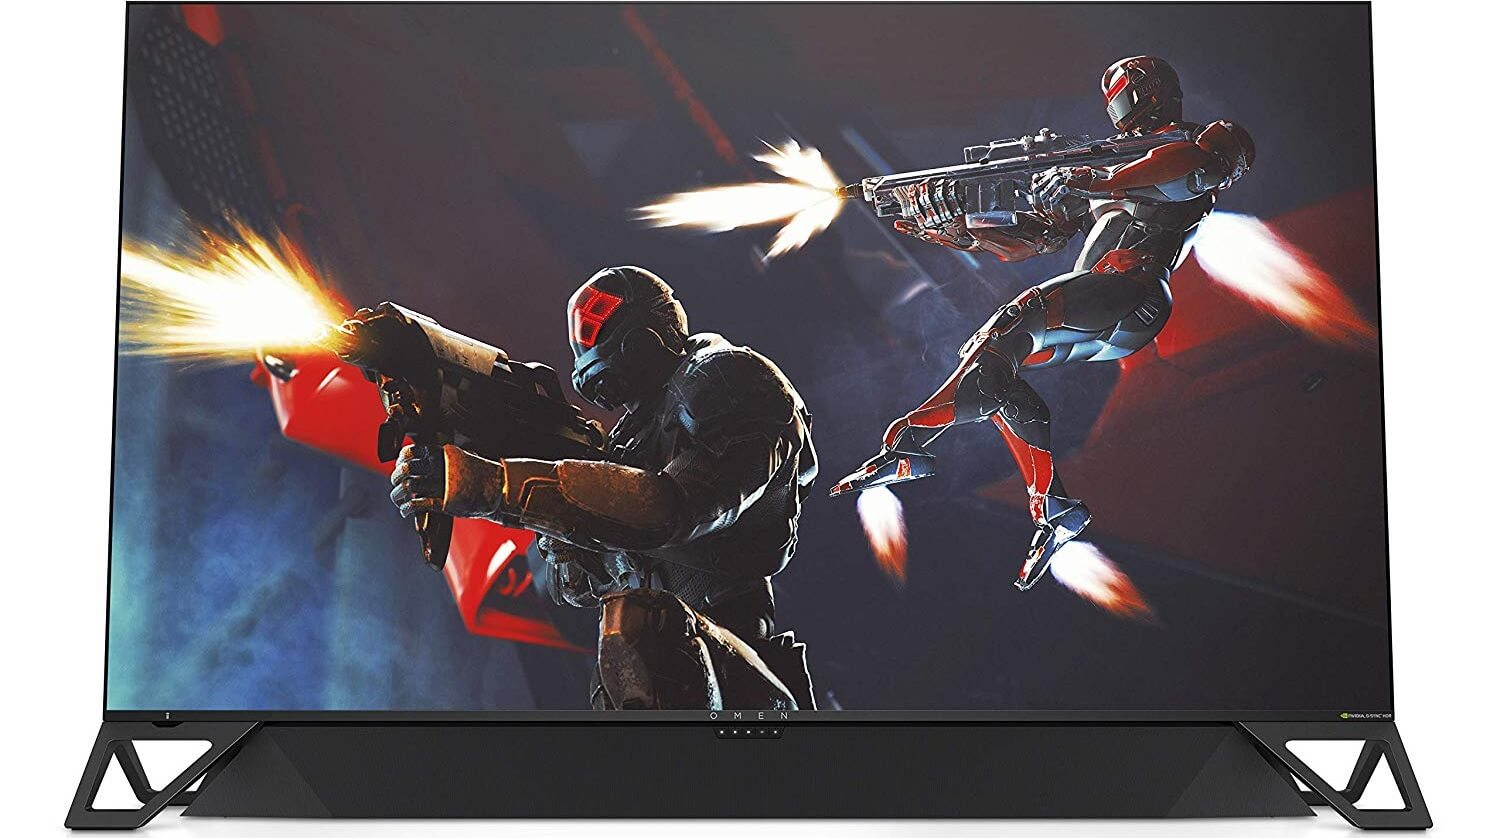 NVIDIA's 65″ 4K G-Sync HDR 144Hz gaming monitors are now available for purchase at $4999